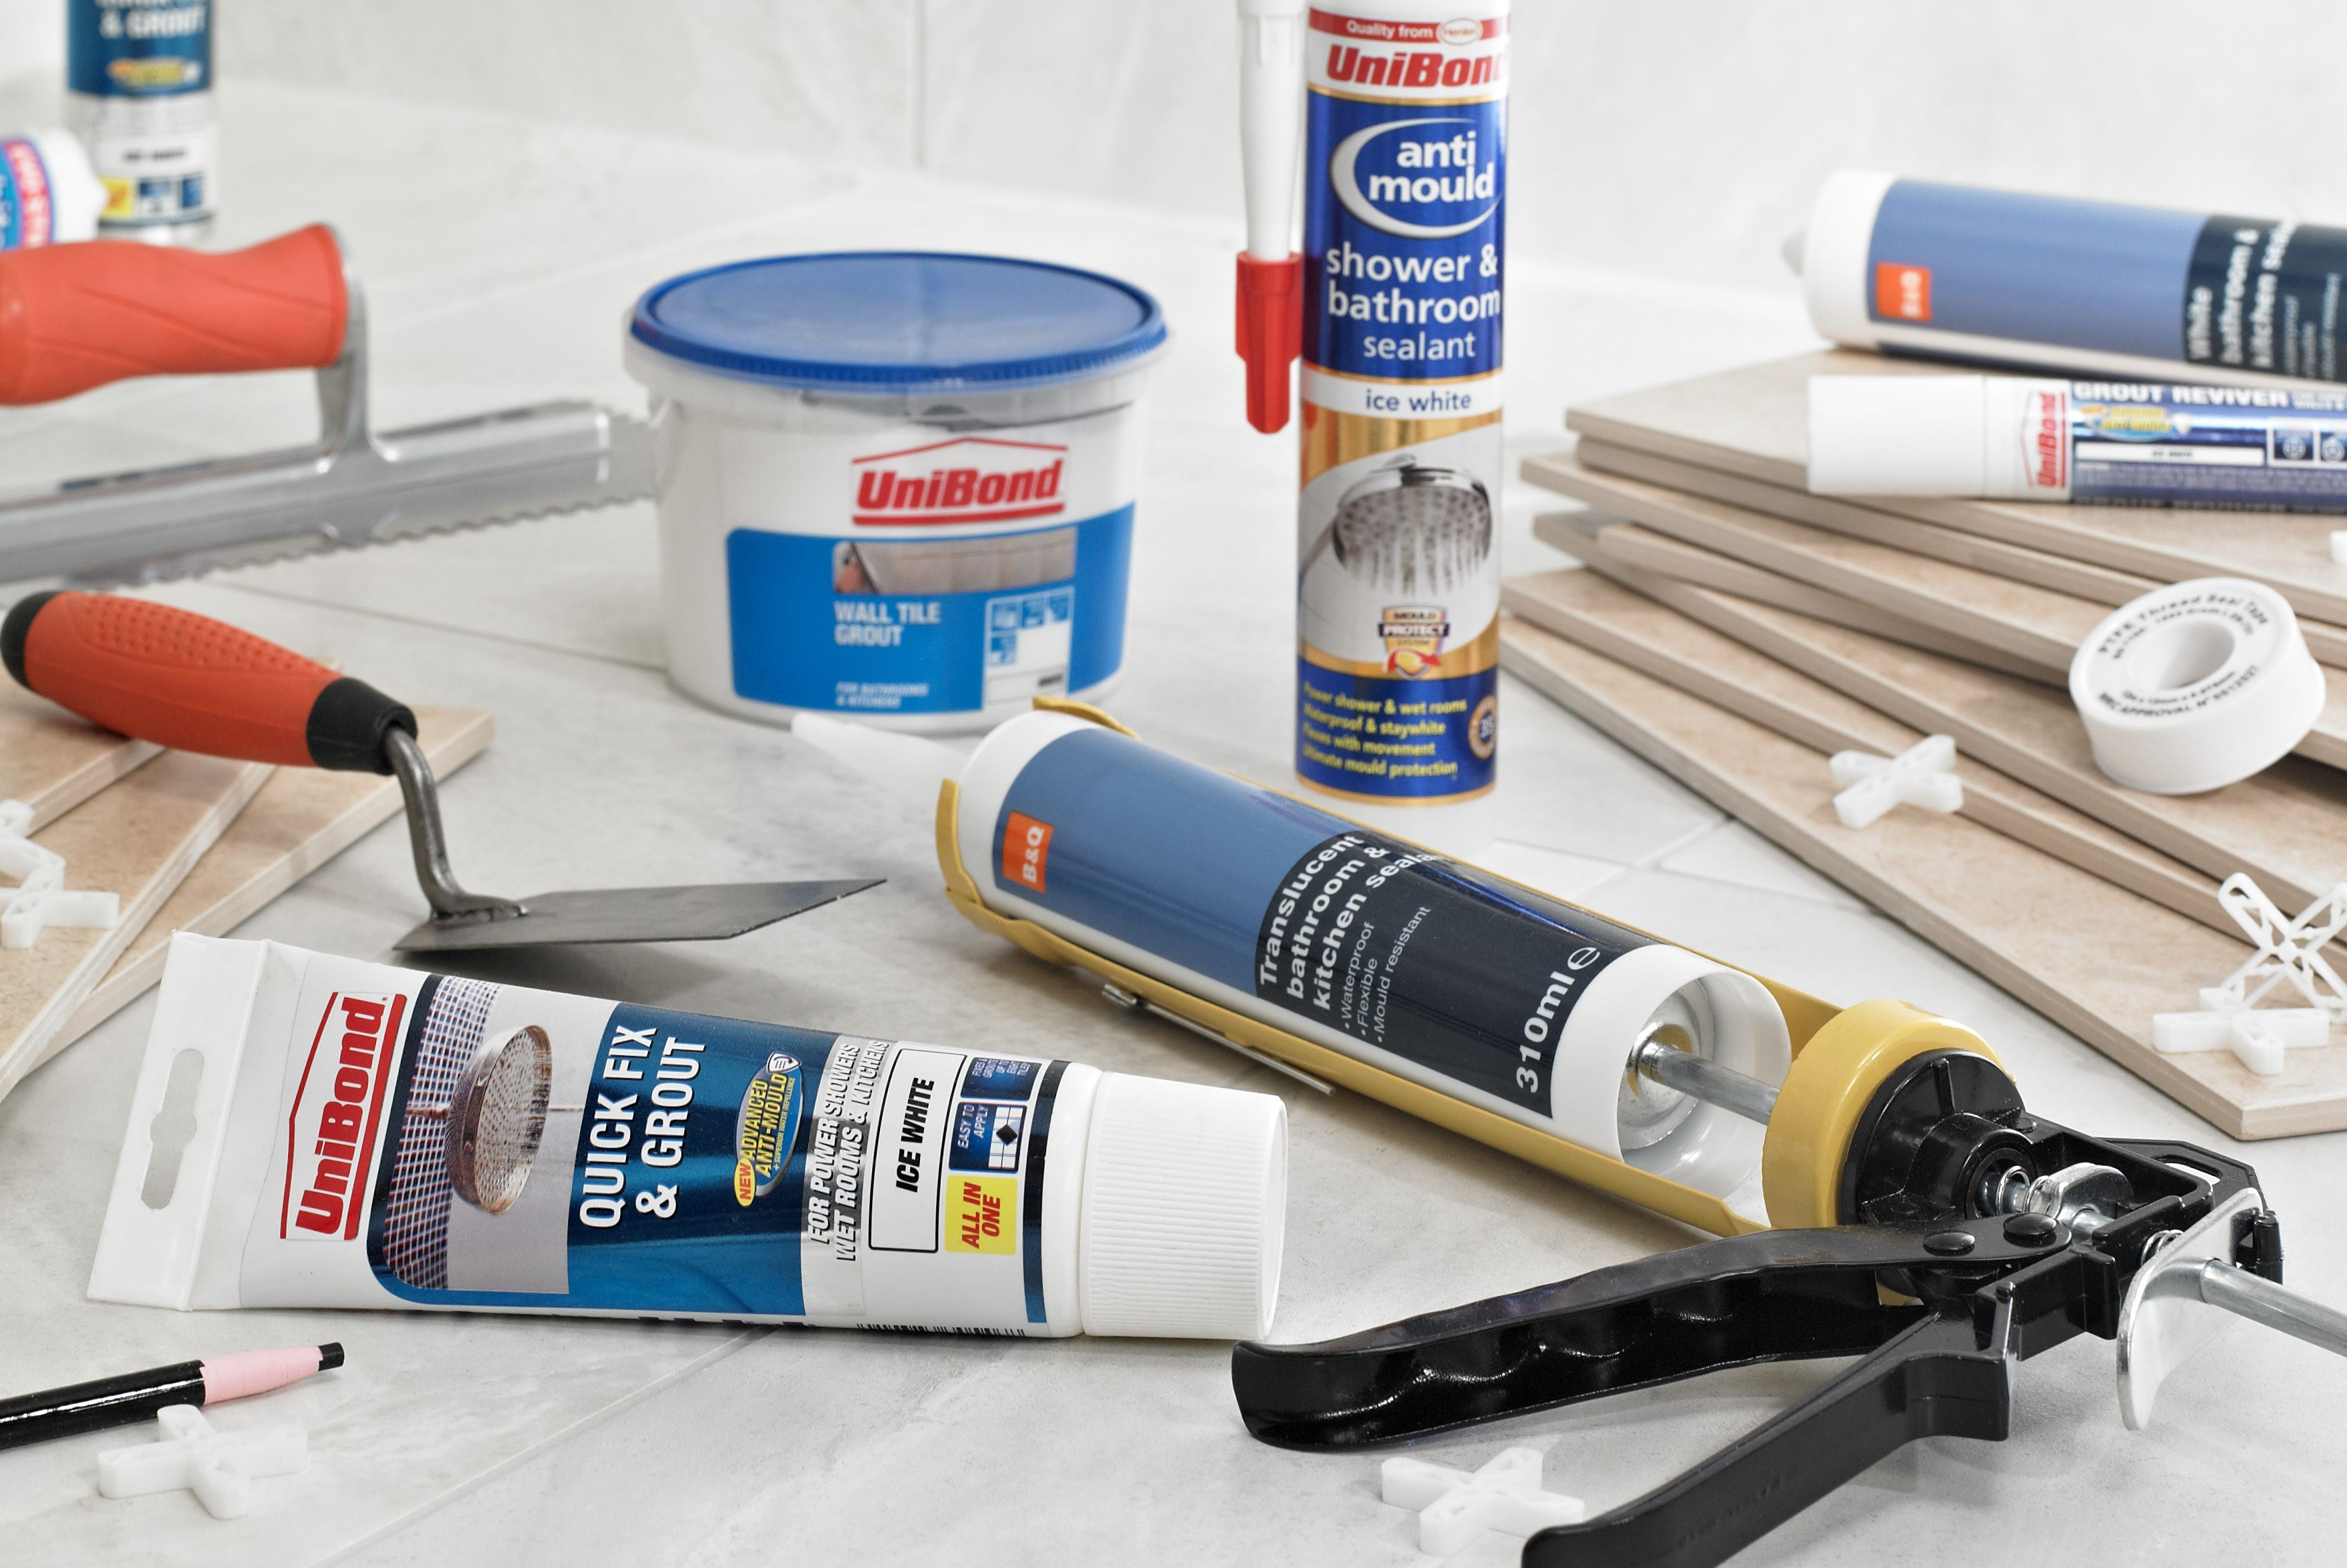 Adhesives Amp Sealants Buying Guide Ideas Amp Advice Diy